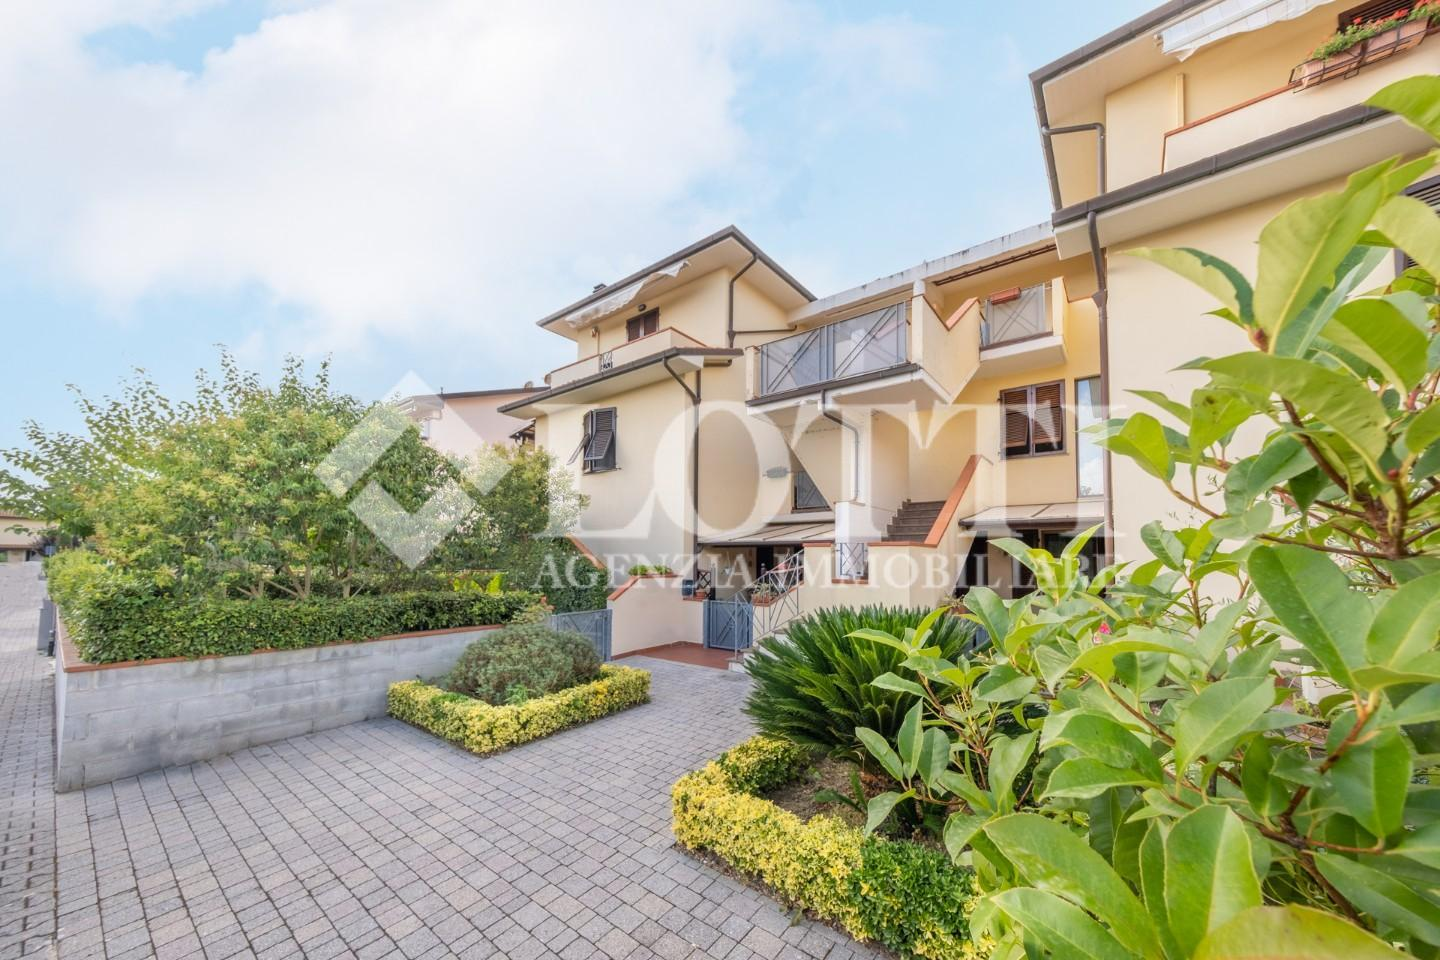 Apartment for sale, ref. 778